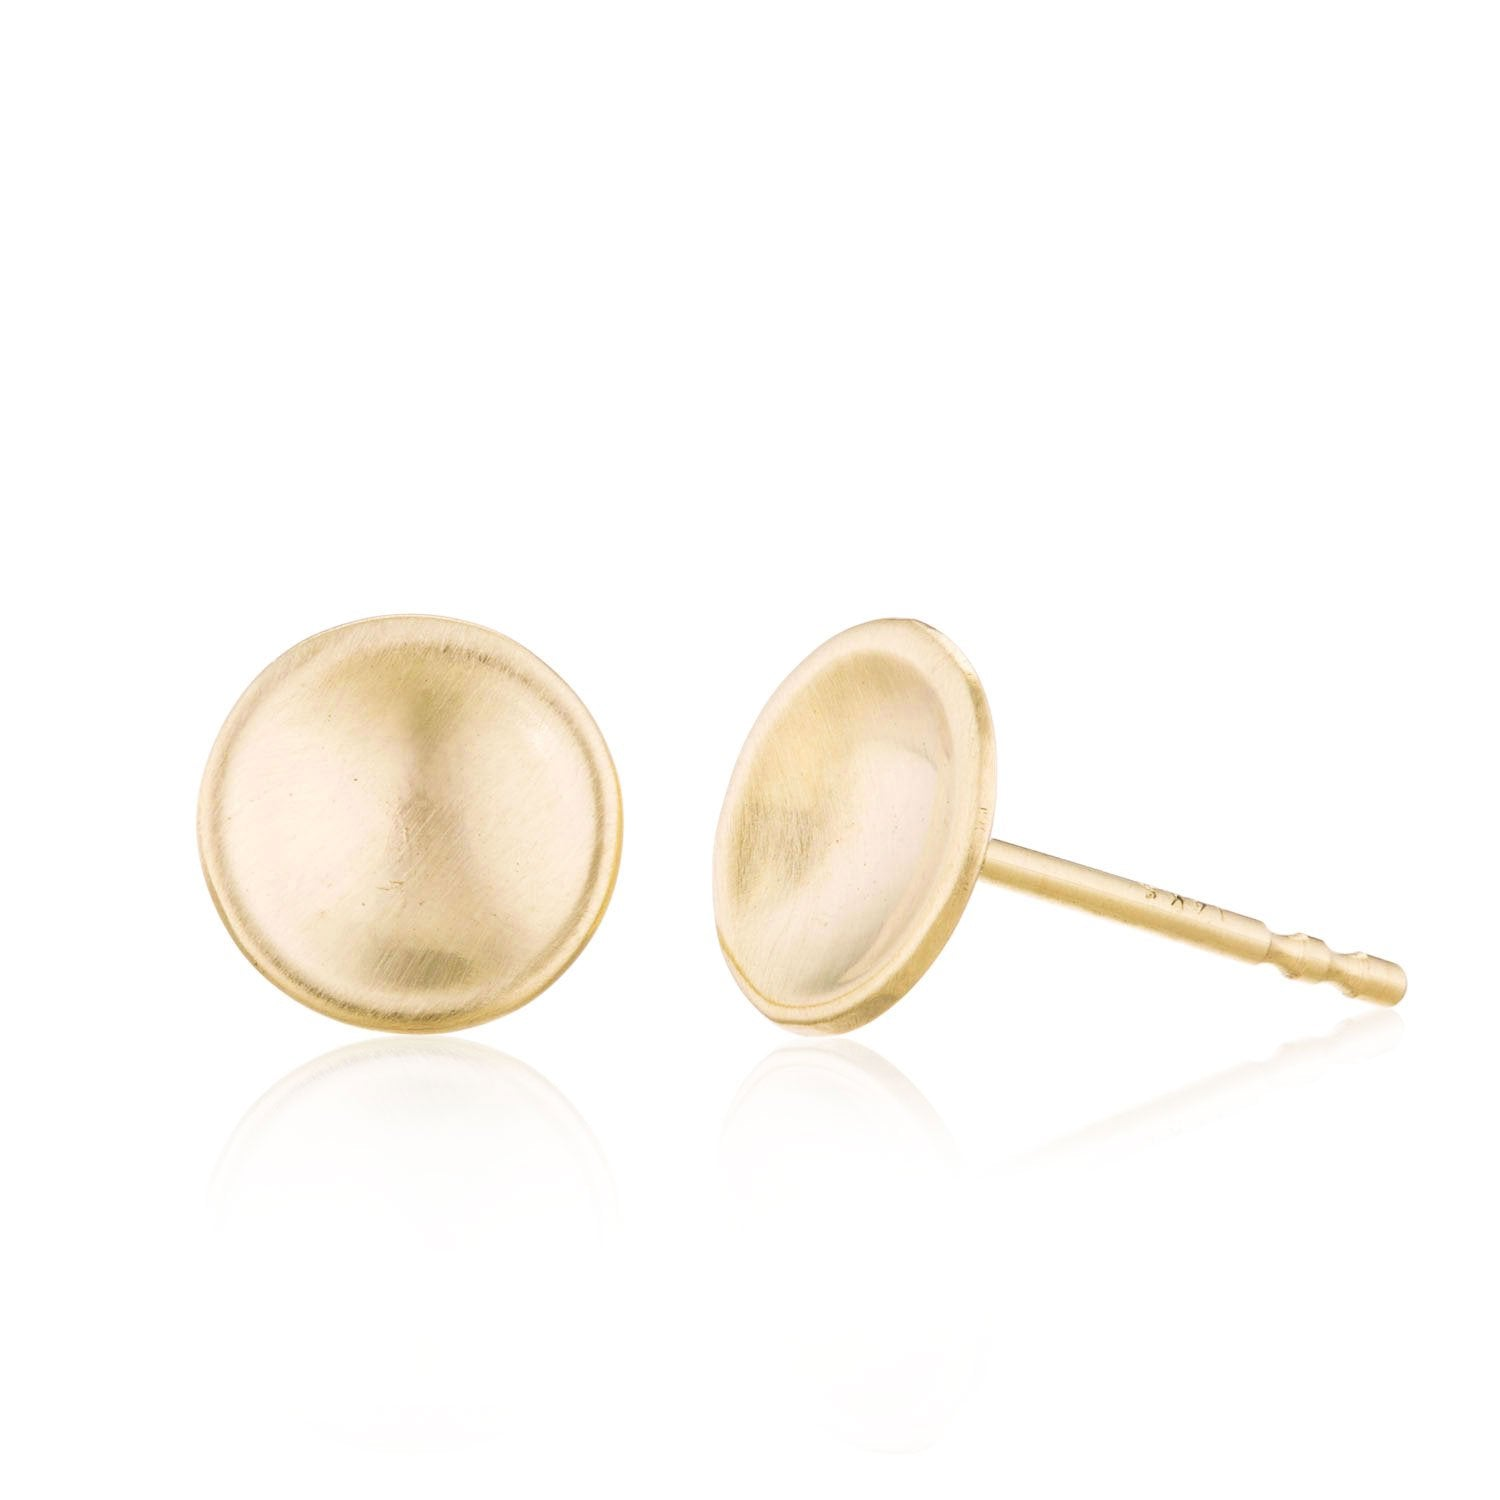 14K Yellow gold concave circle stud earrings  by Valerie Madison Jewelry